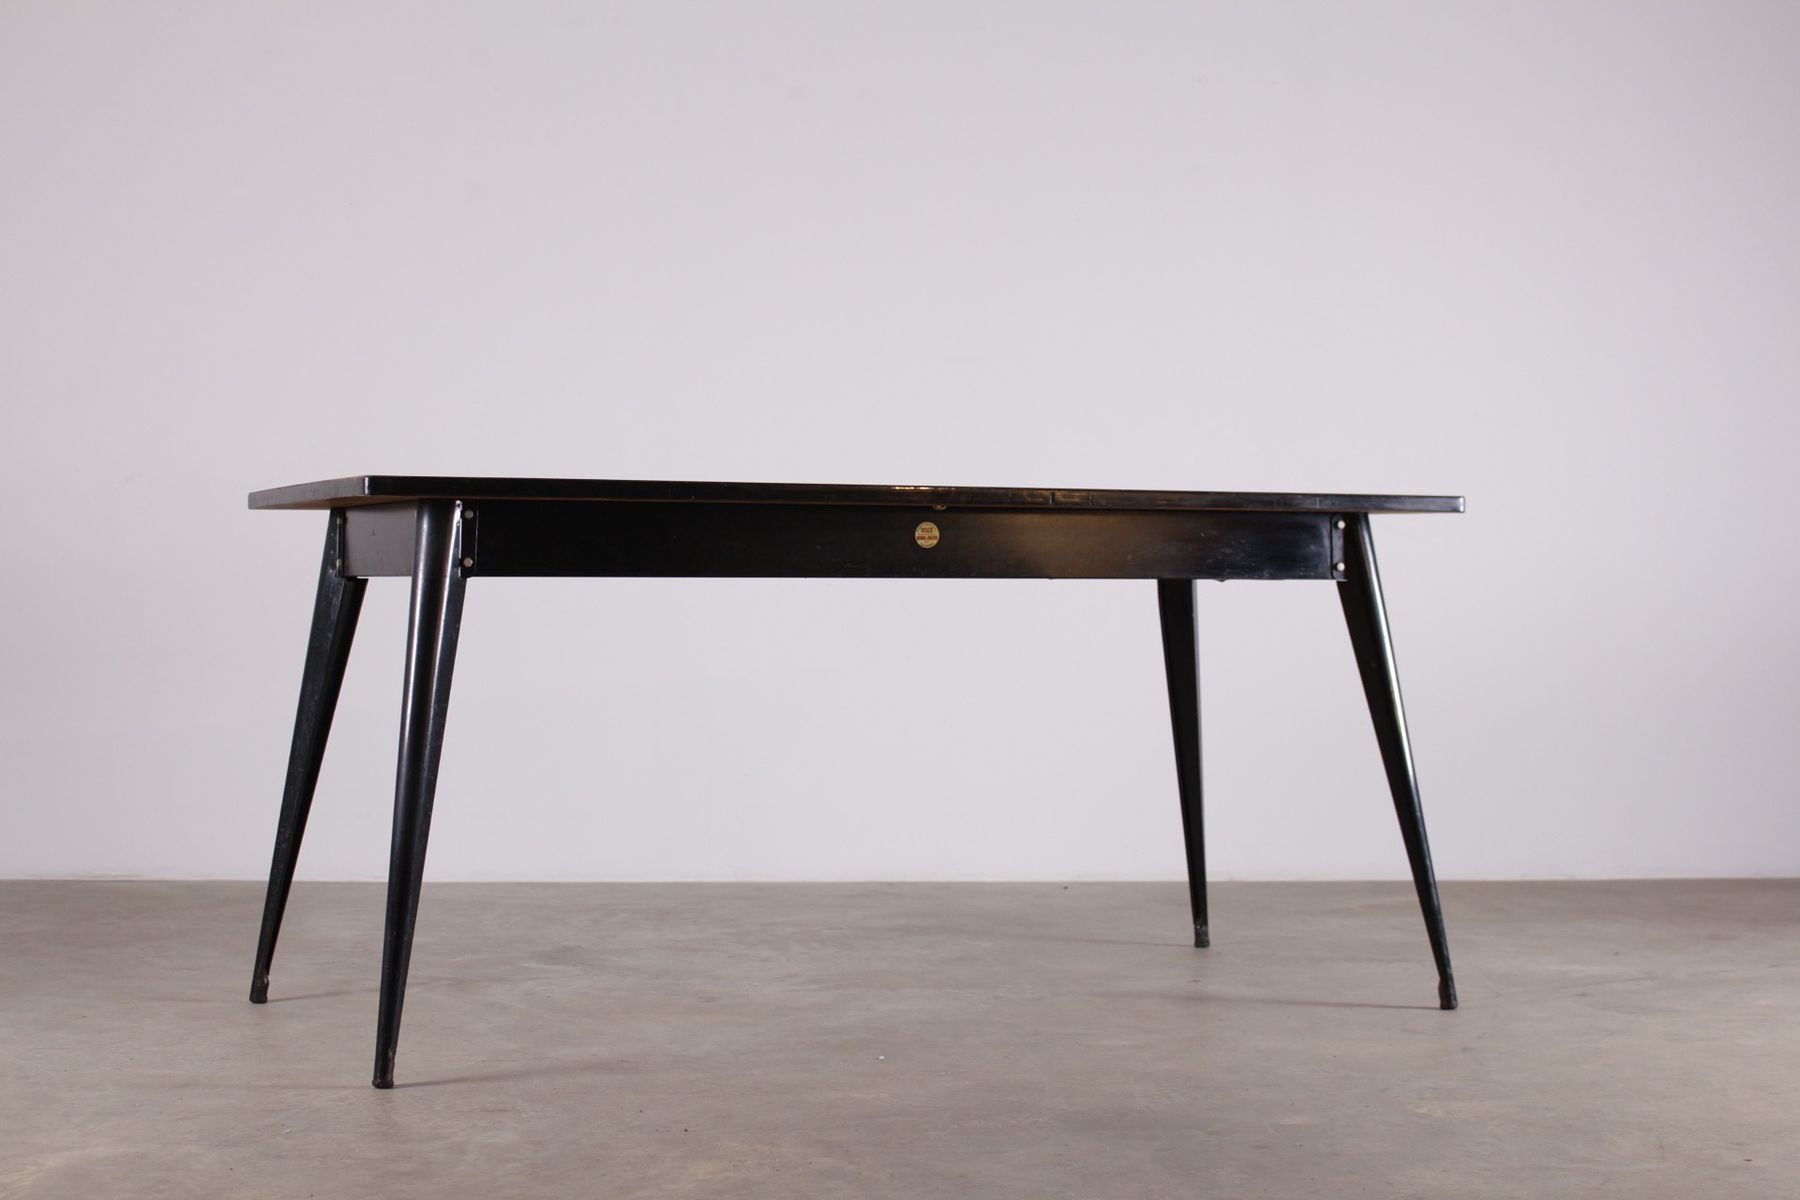 Xavier Pauchard large table by xavier pauchard for tolix 1960s for sale at pamono